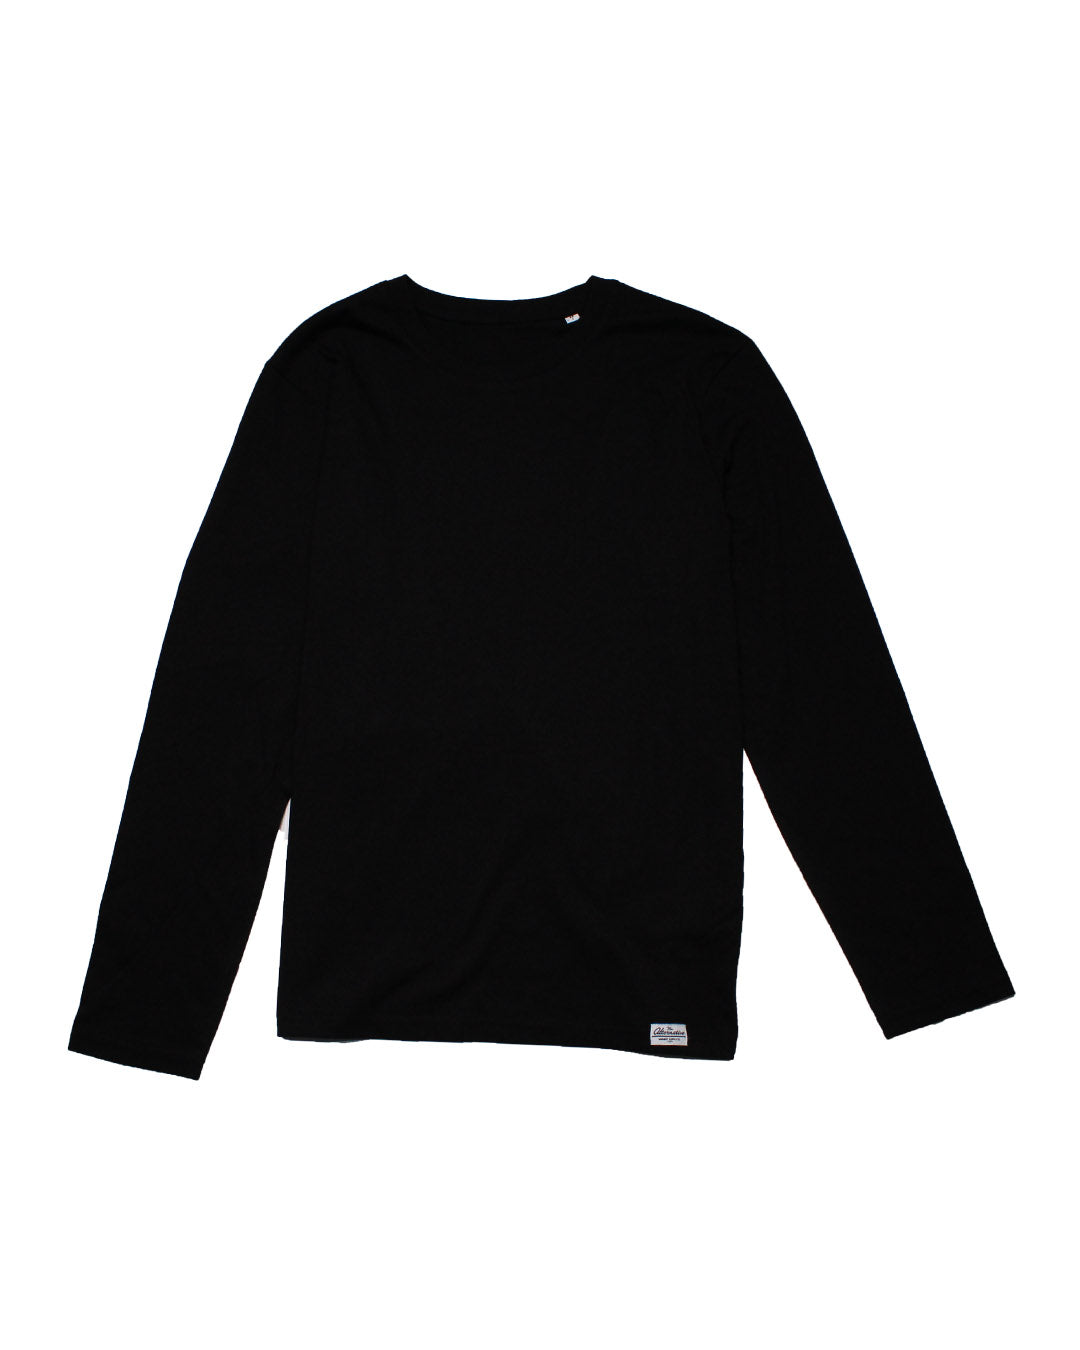 The Alternative - Black Long Sleeve T-Shirt